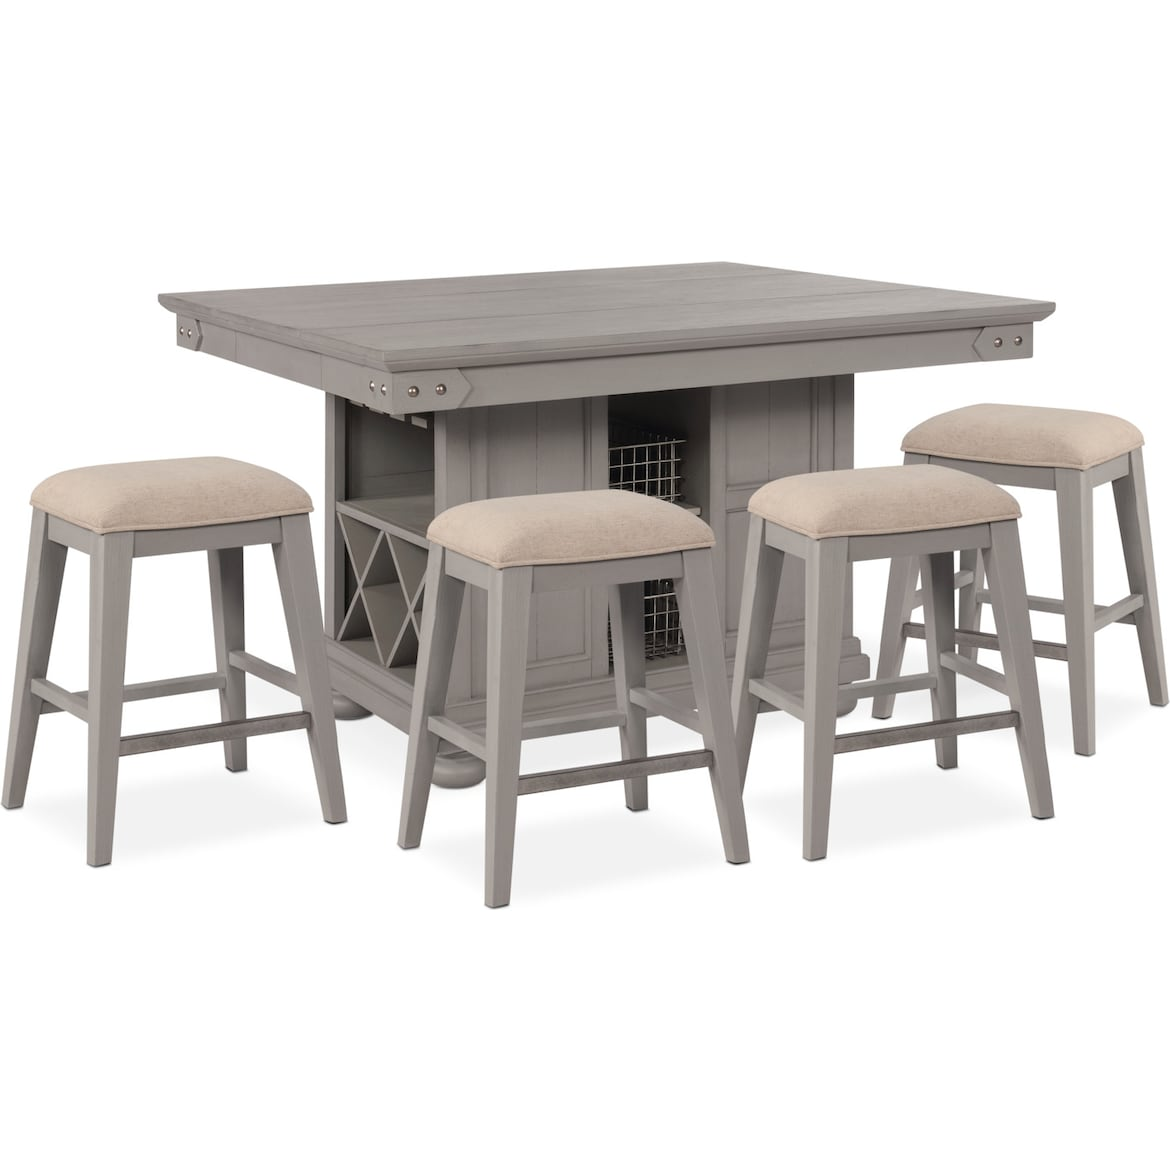 counter height chairs for kitchen island new haven counter height kitchen island and 4 backless stools american signature furniture 179